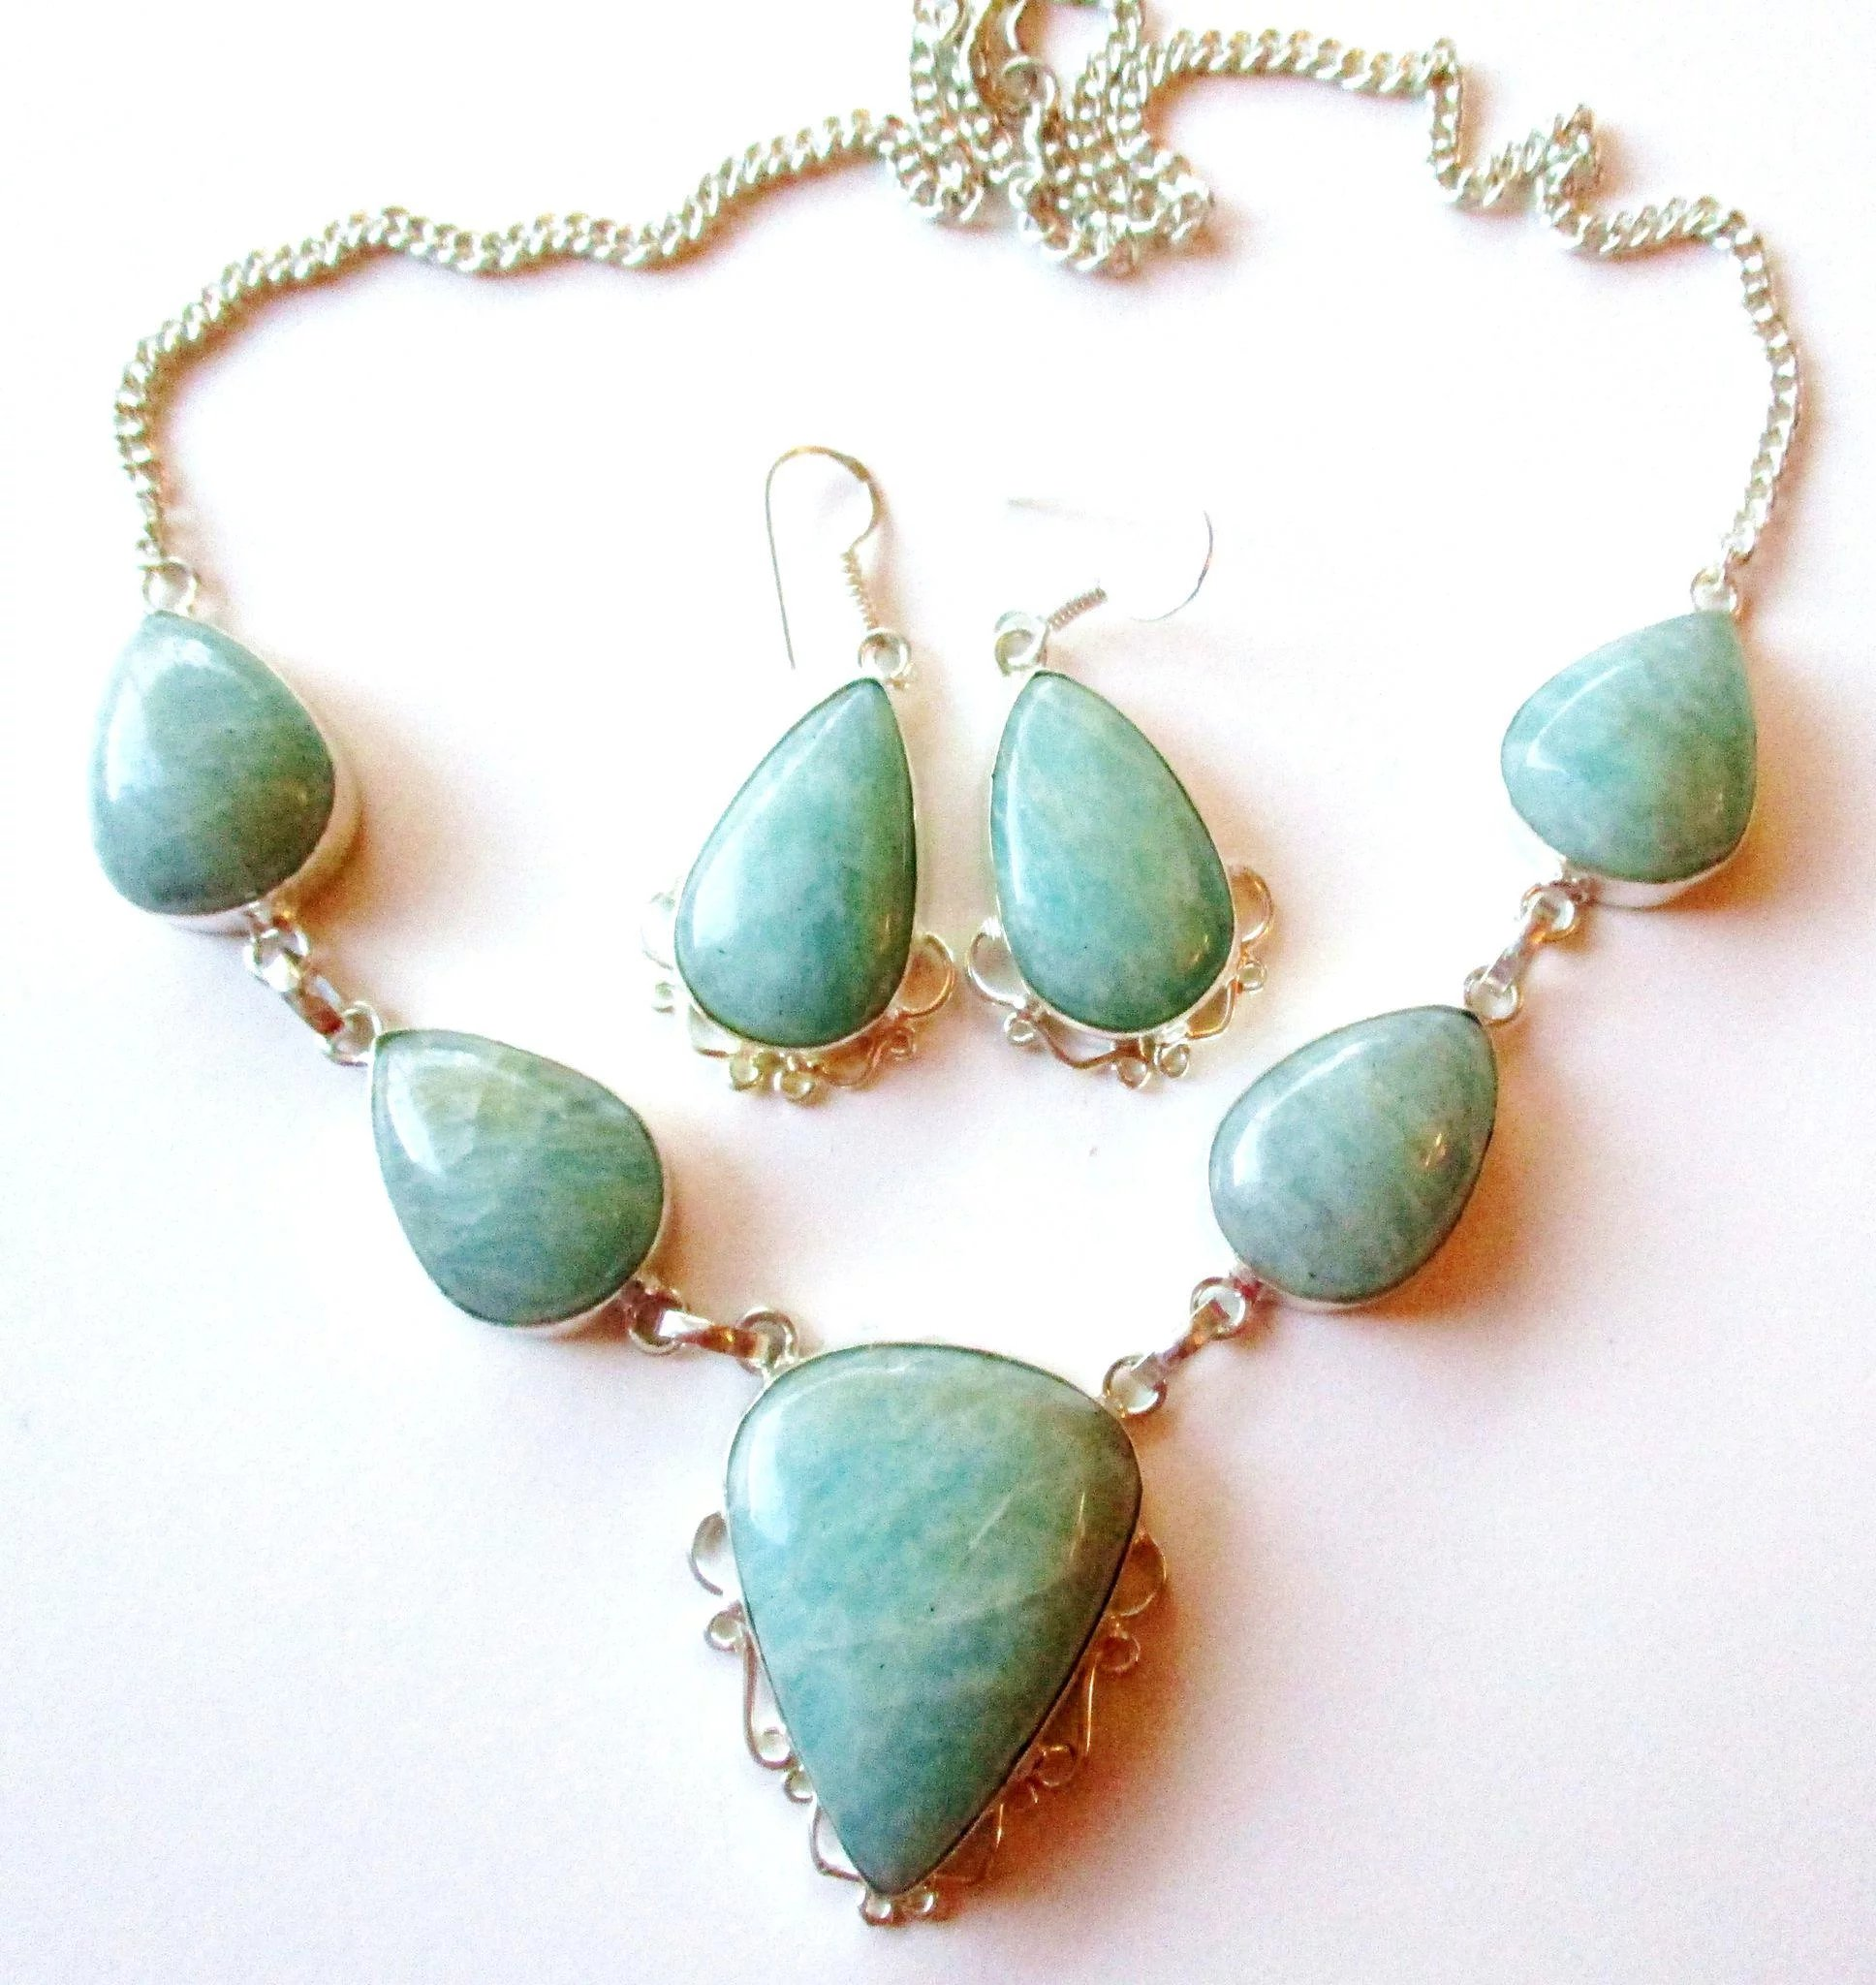 namaste amazonite necklace jewelry products page img